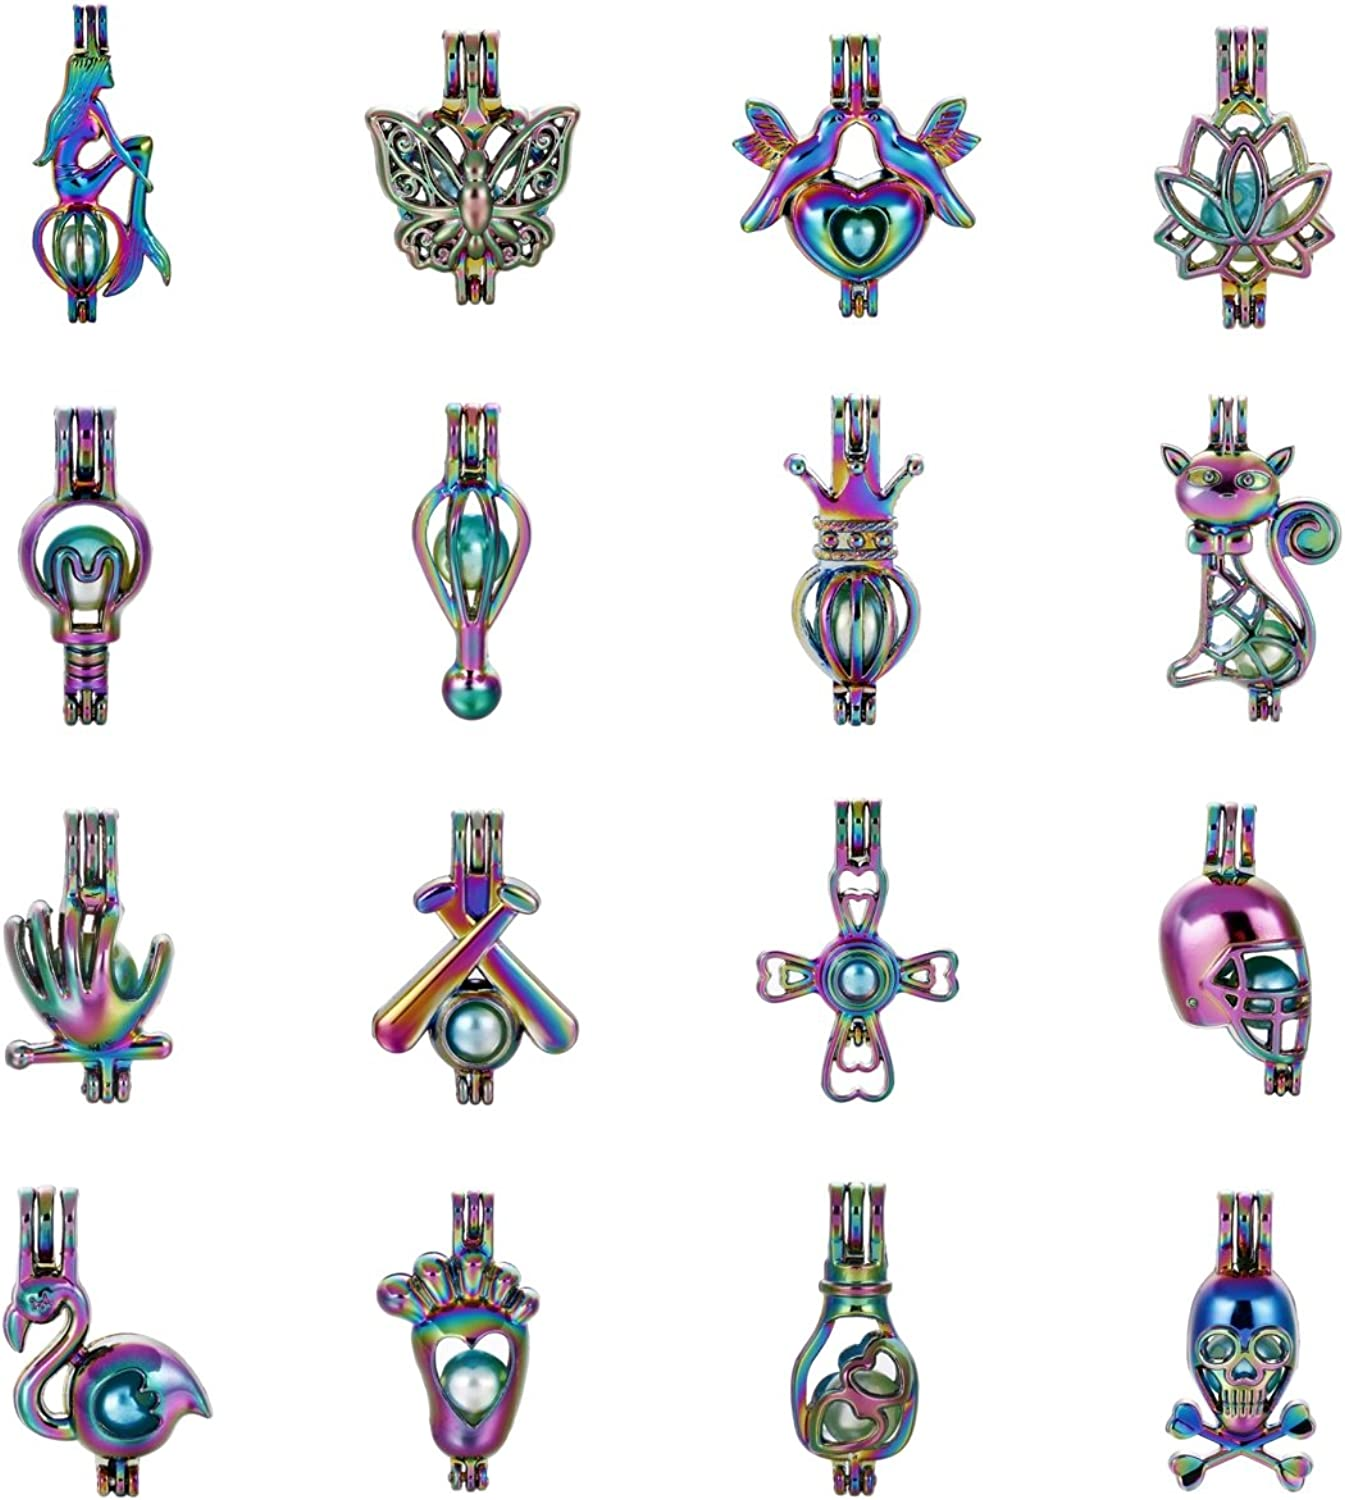 Mixed 16pcs Rainbow color Pearl Beads Cage Locket Pendants Jewelry Makingfor Oyster Pearls, Essential Oil Diffuser, Fun Gifts (Style 1)